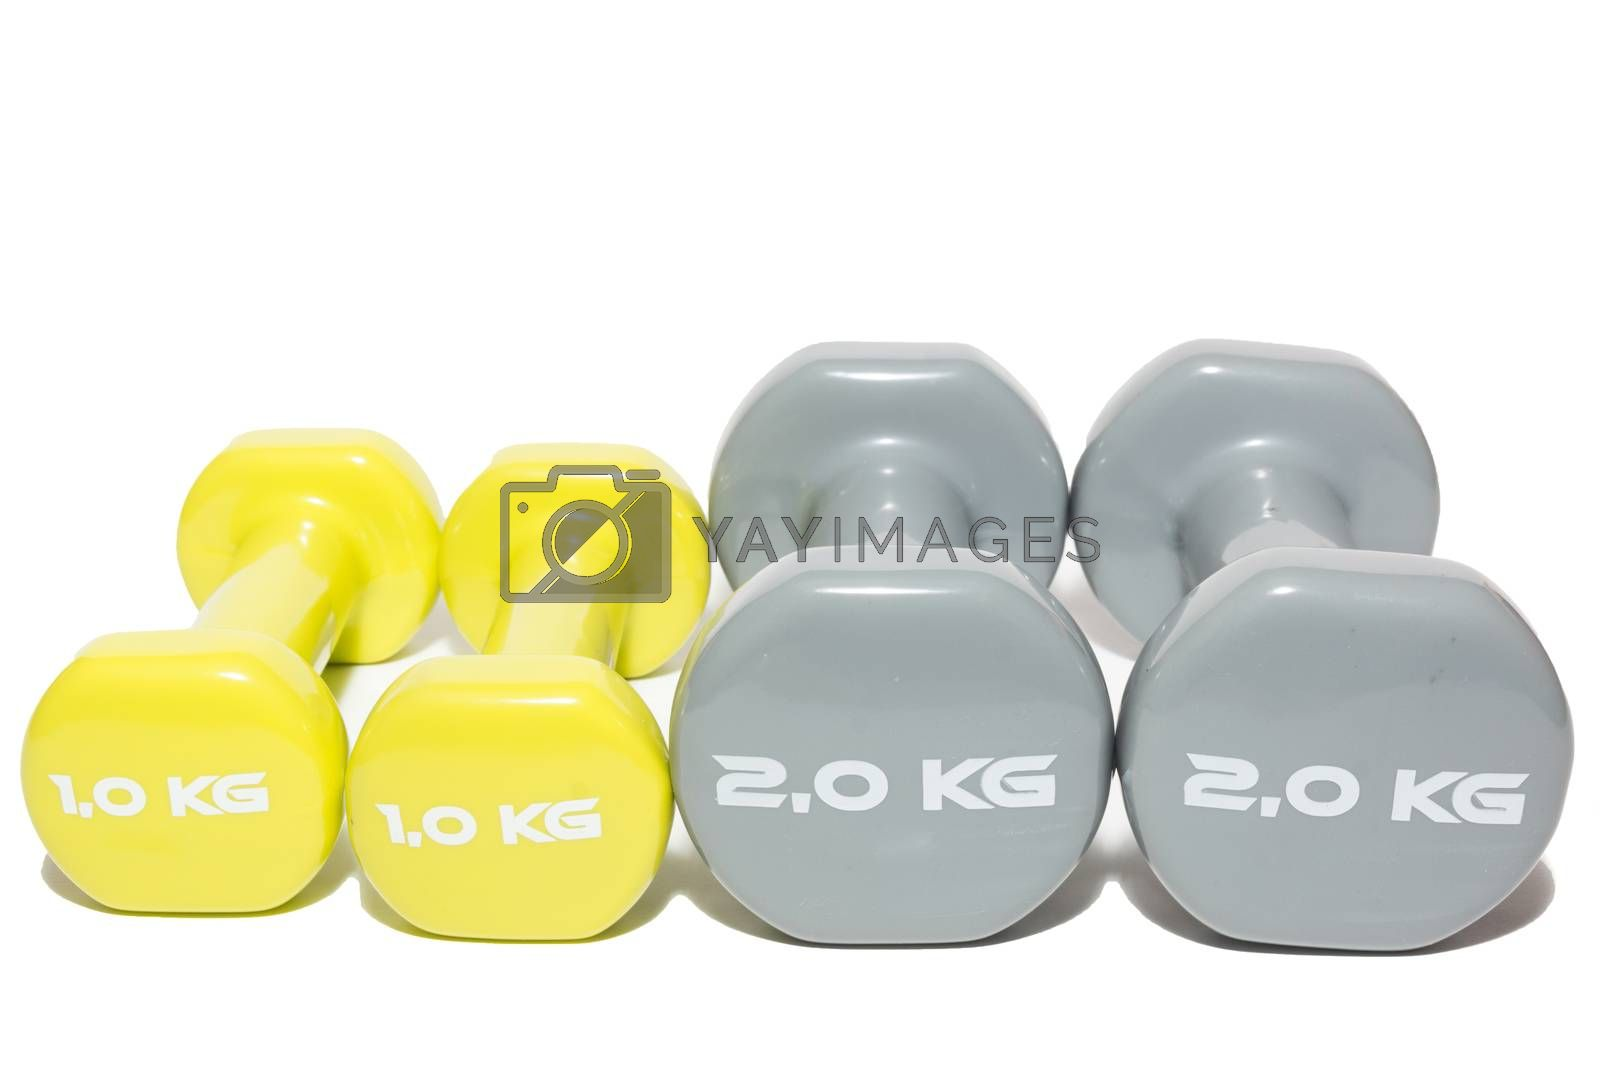 Royalty free image of dumbbell on a white background by AlexBush